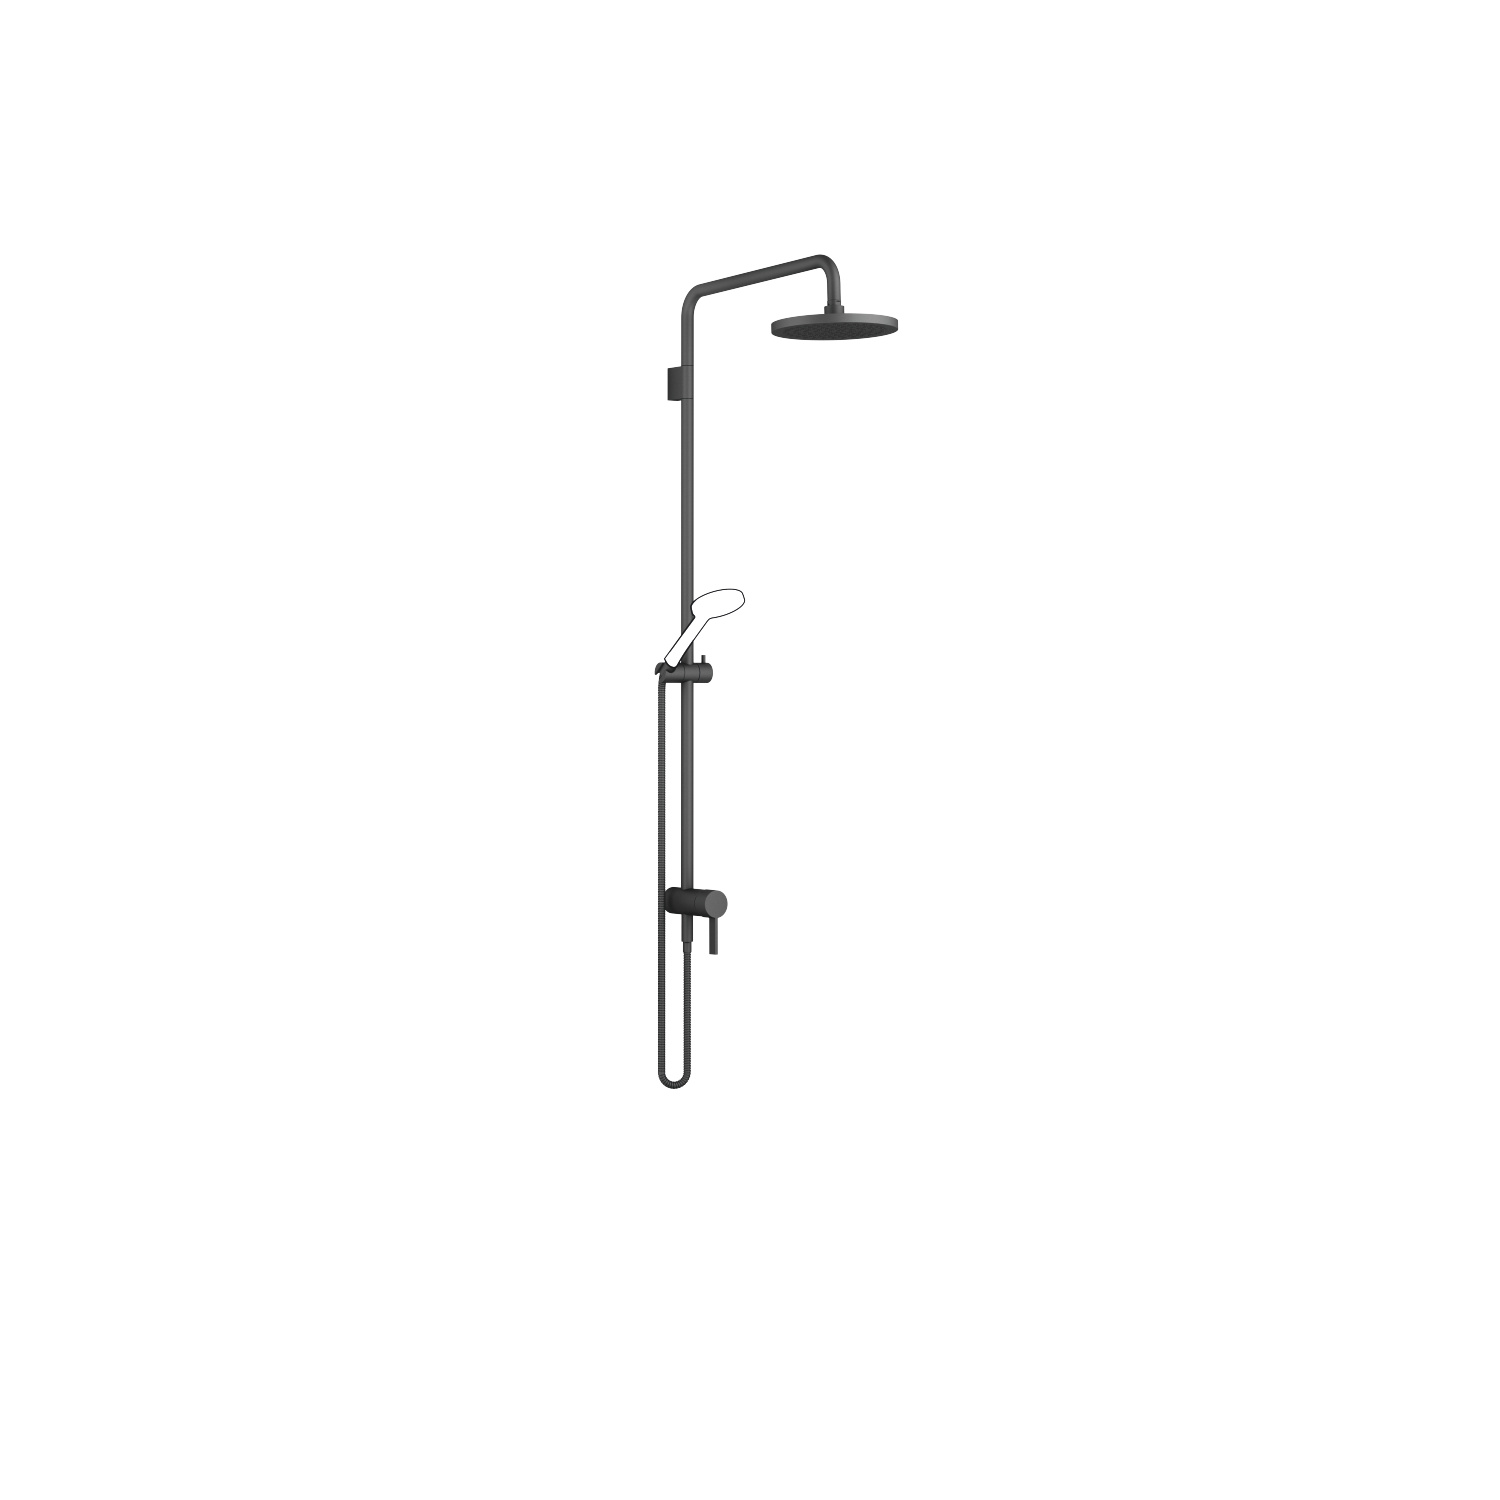 Showerpipe with single-lever shower mixer - matt black